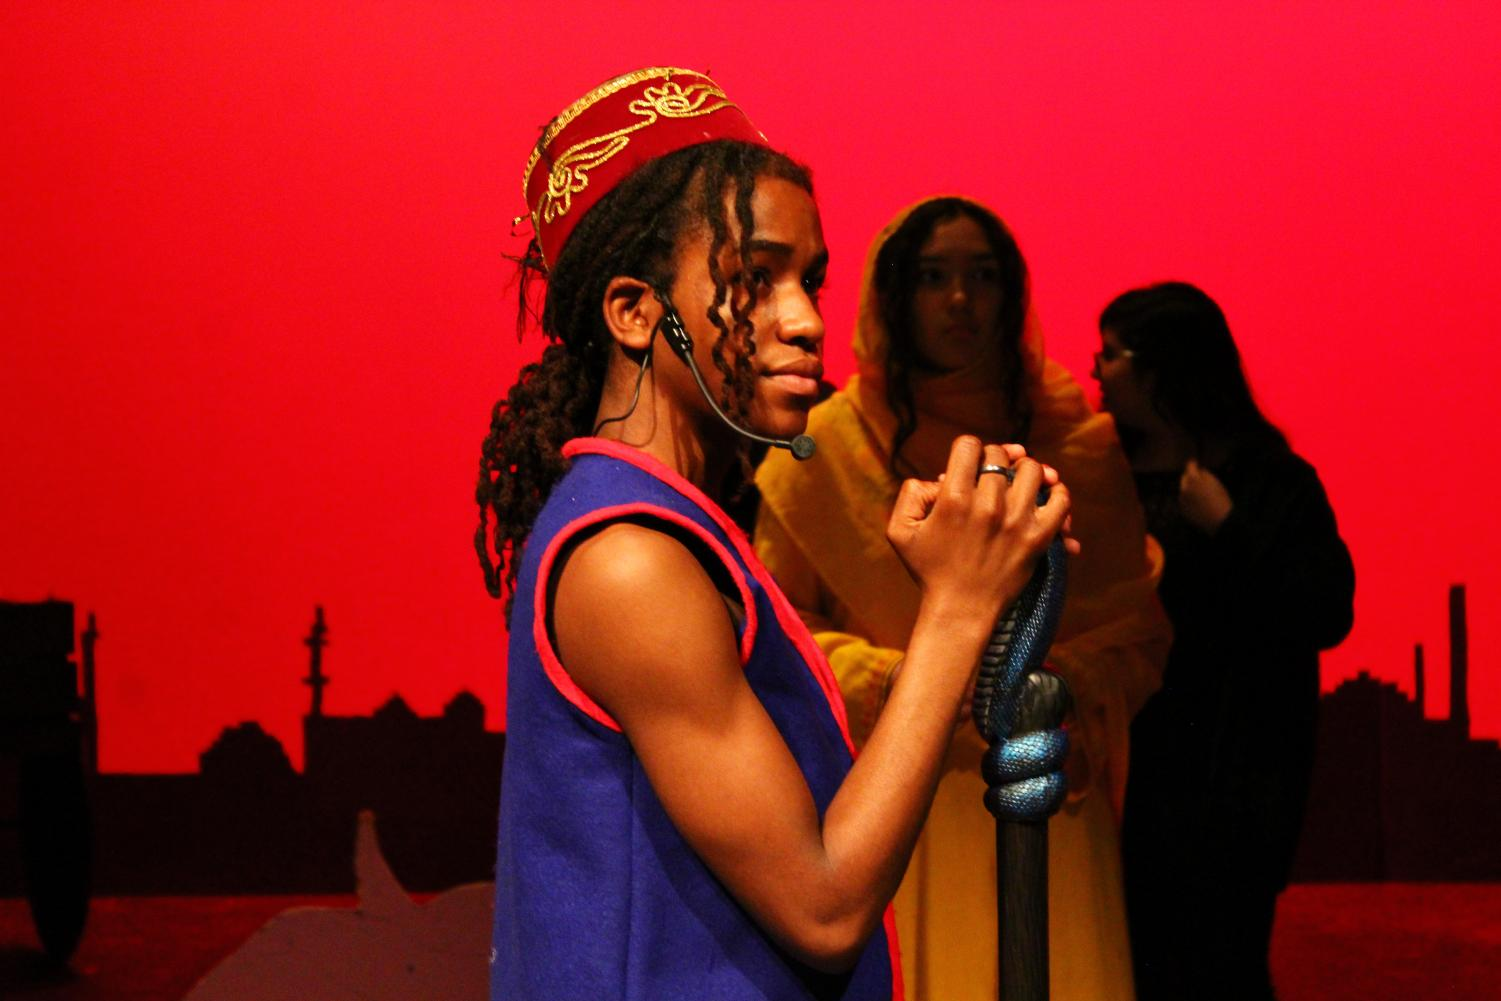 Lead actor Nathaniel Cullors, performs his role as Aladdin in the Judson theater production of Aladdin Jr. While preparing for his role in Aladdin, Cullors also had to rehearse a part for another play.